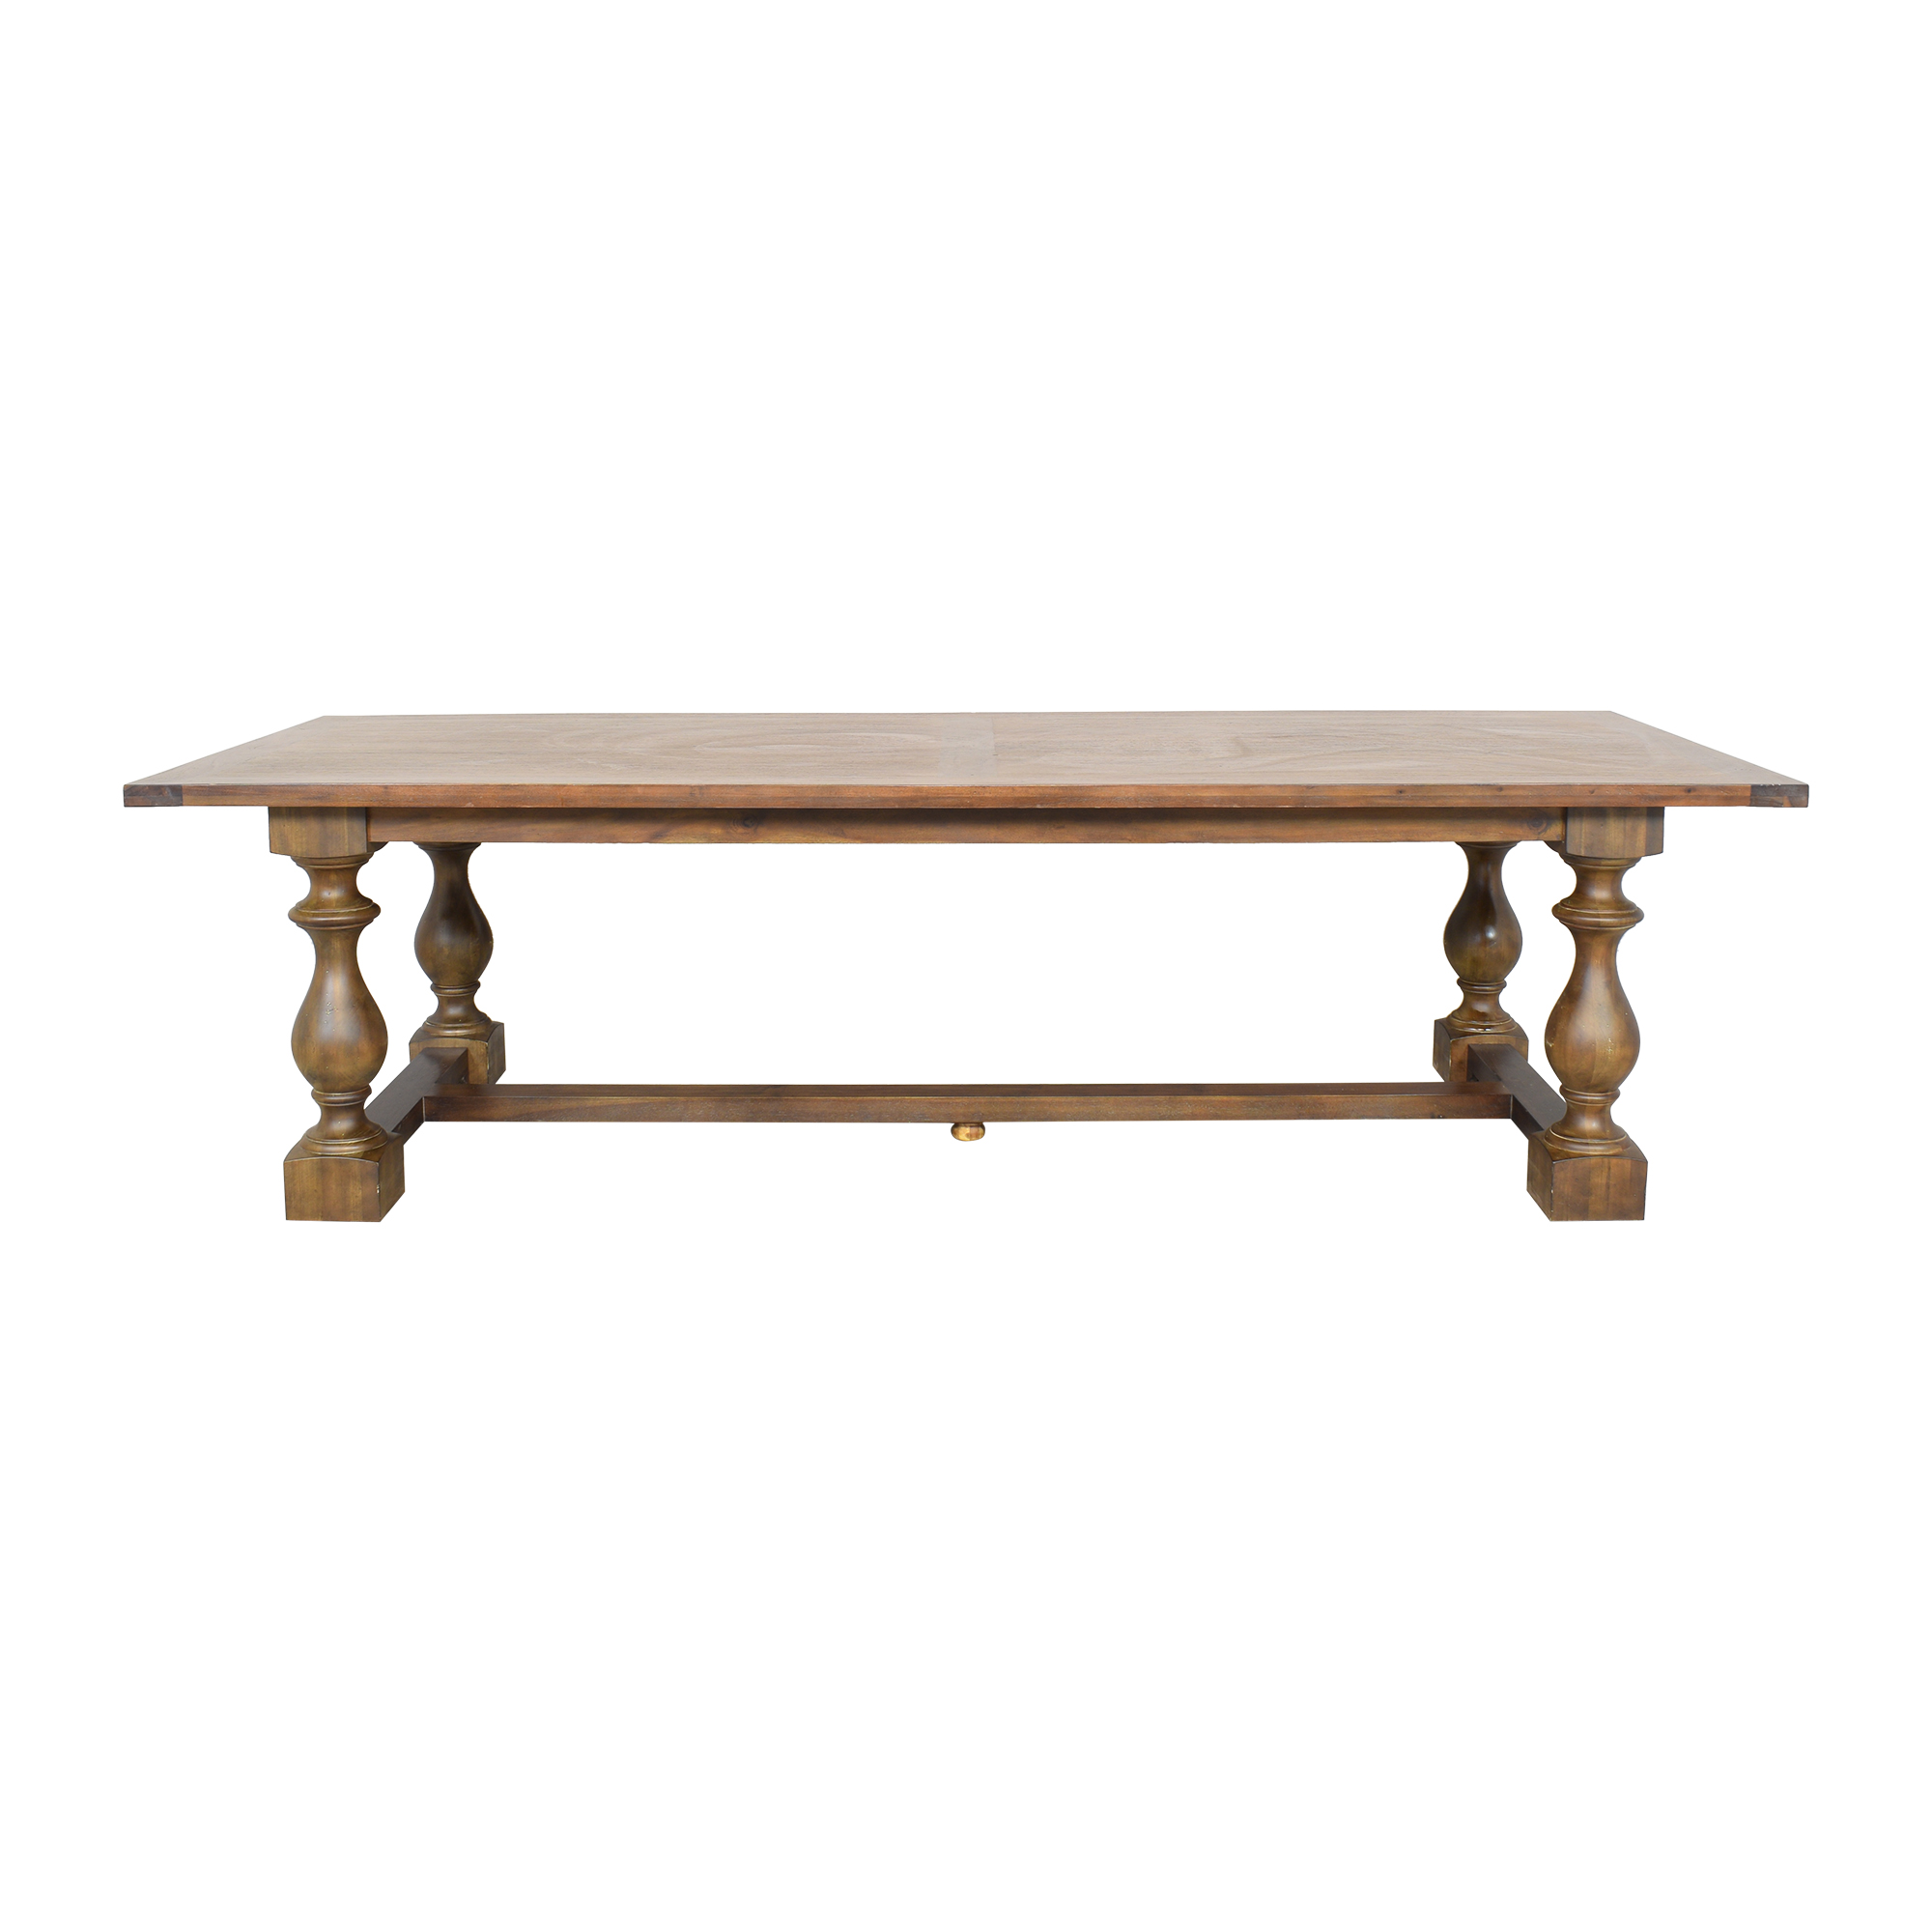 Restoration Hardware Restoration Hardware 17th C. Monastery Rectangular Dining Table  brown